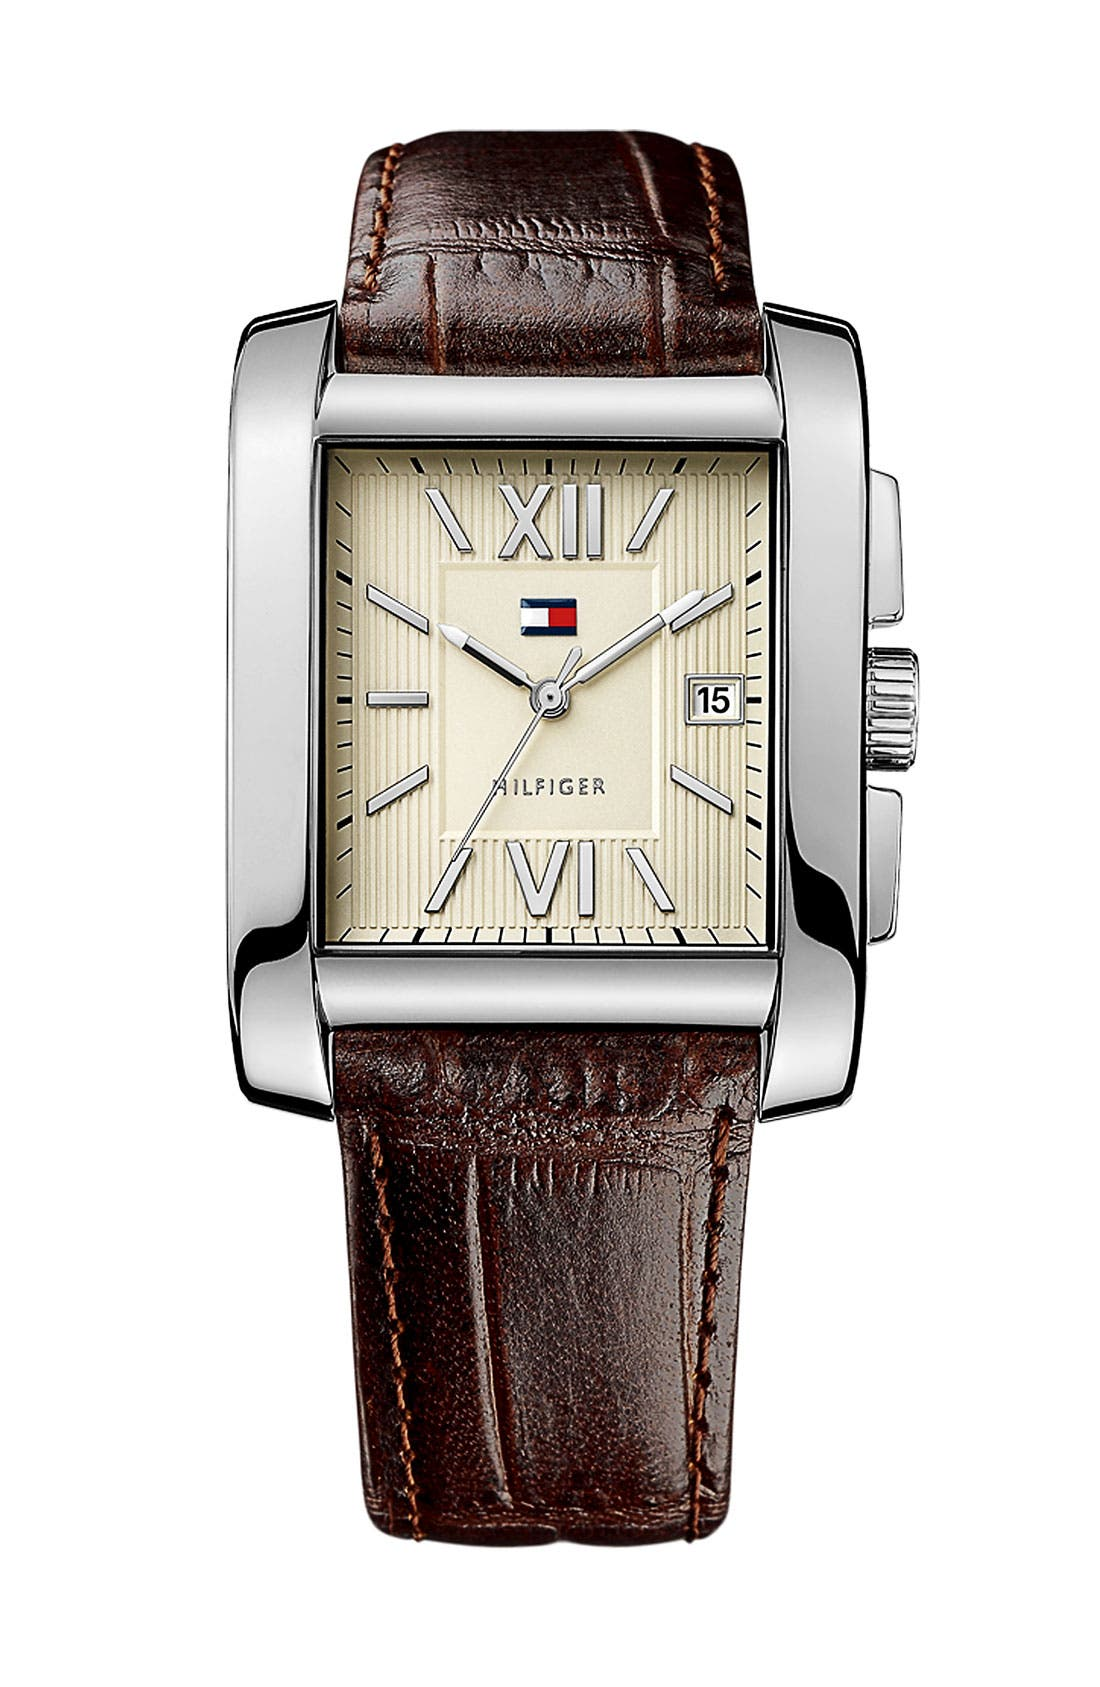 Alternate Image 1 Selected - Tommy Hilfiger Square Leather Strap Watch, 36mmW x 47mm